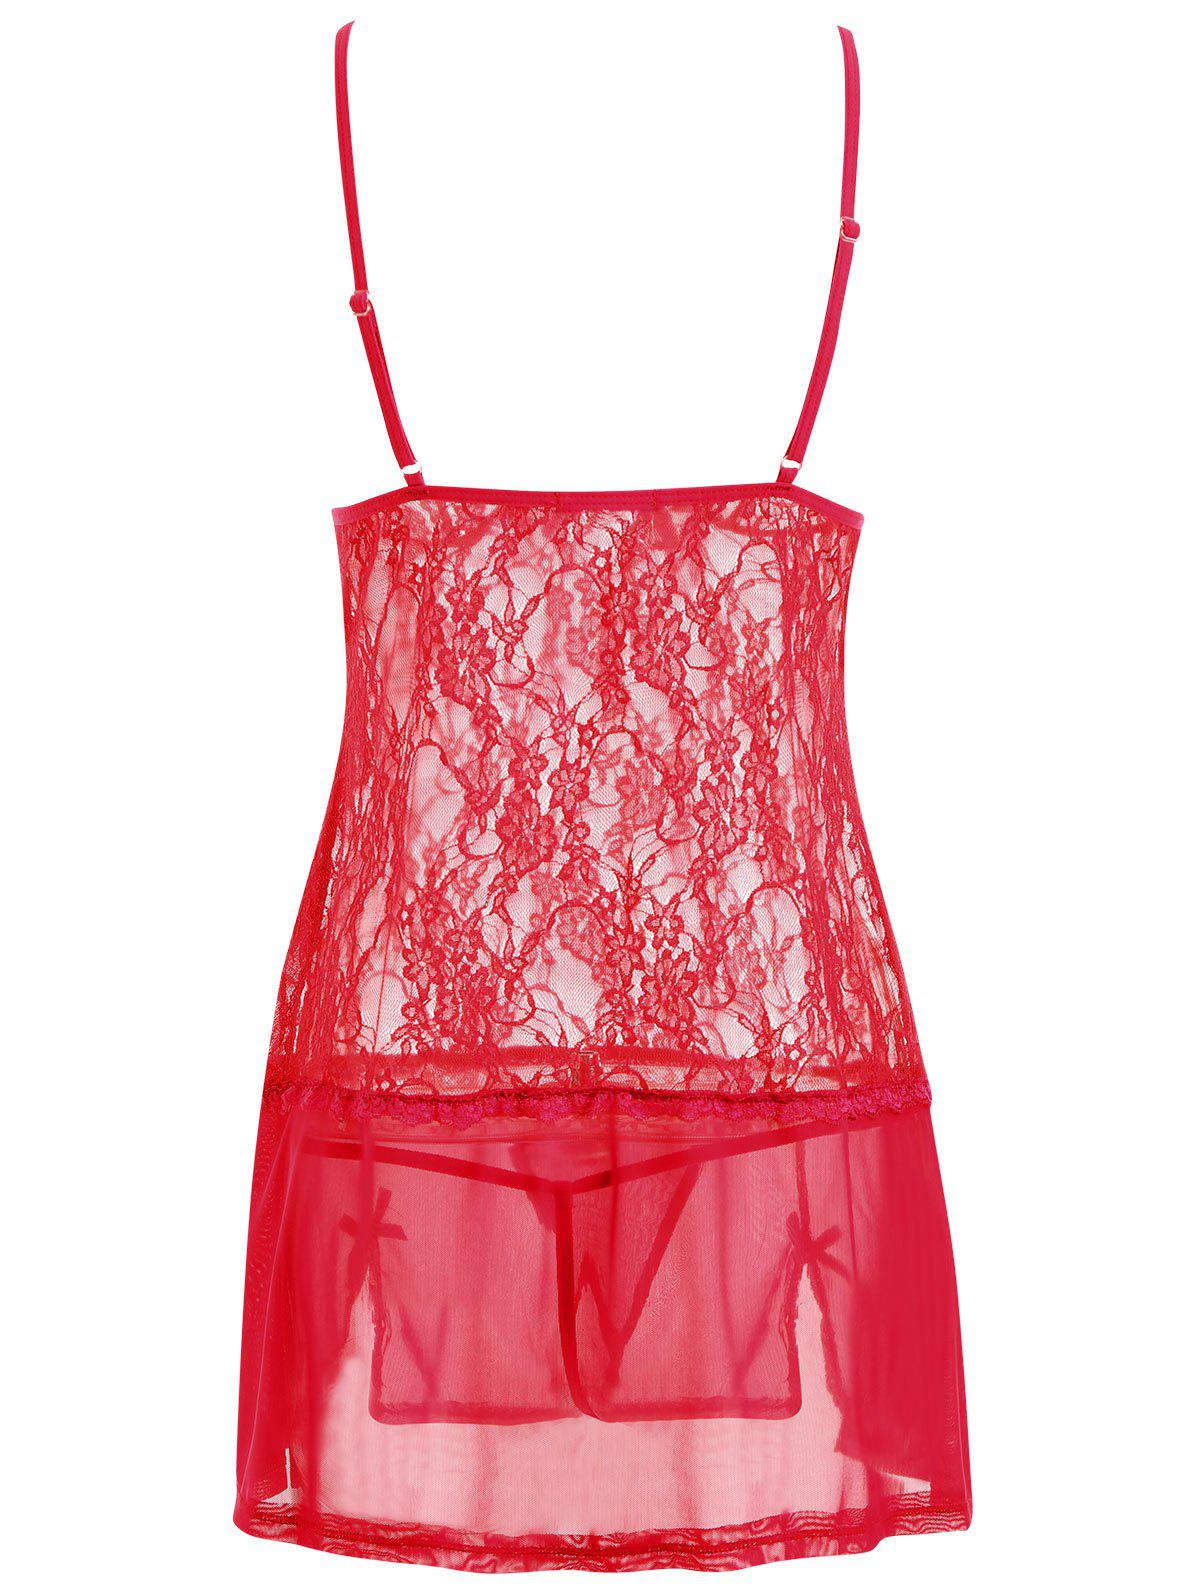 Lace Slip See Thru Lingerie Babydoll - RED XL